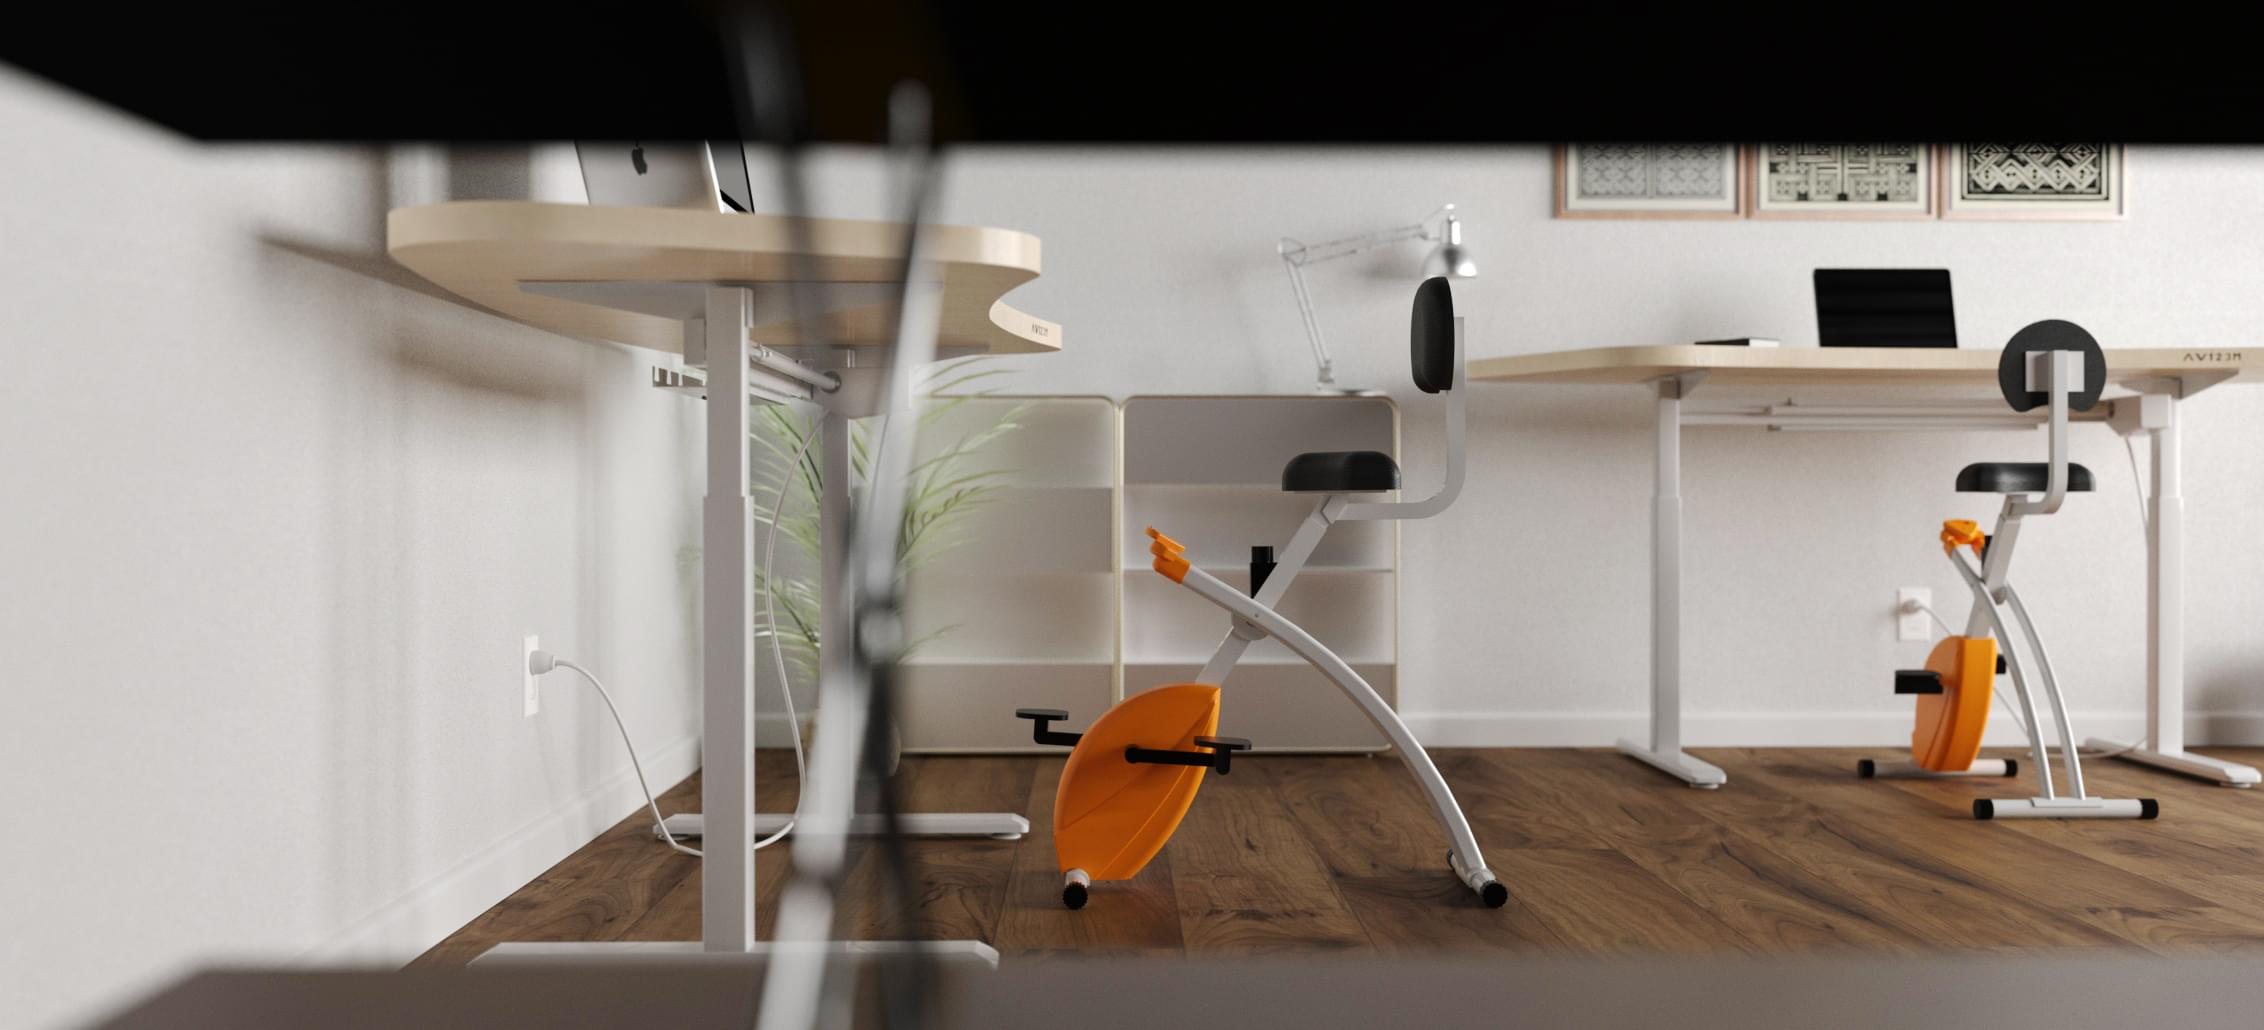 Ergonomyx desk and bike in an office